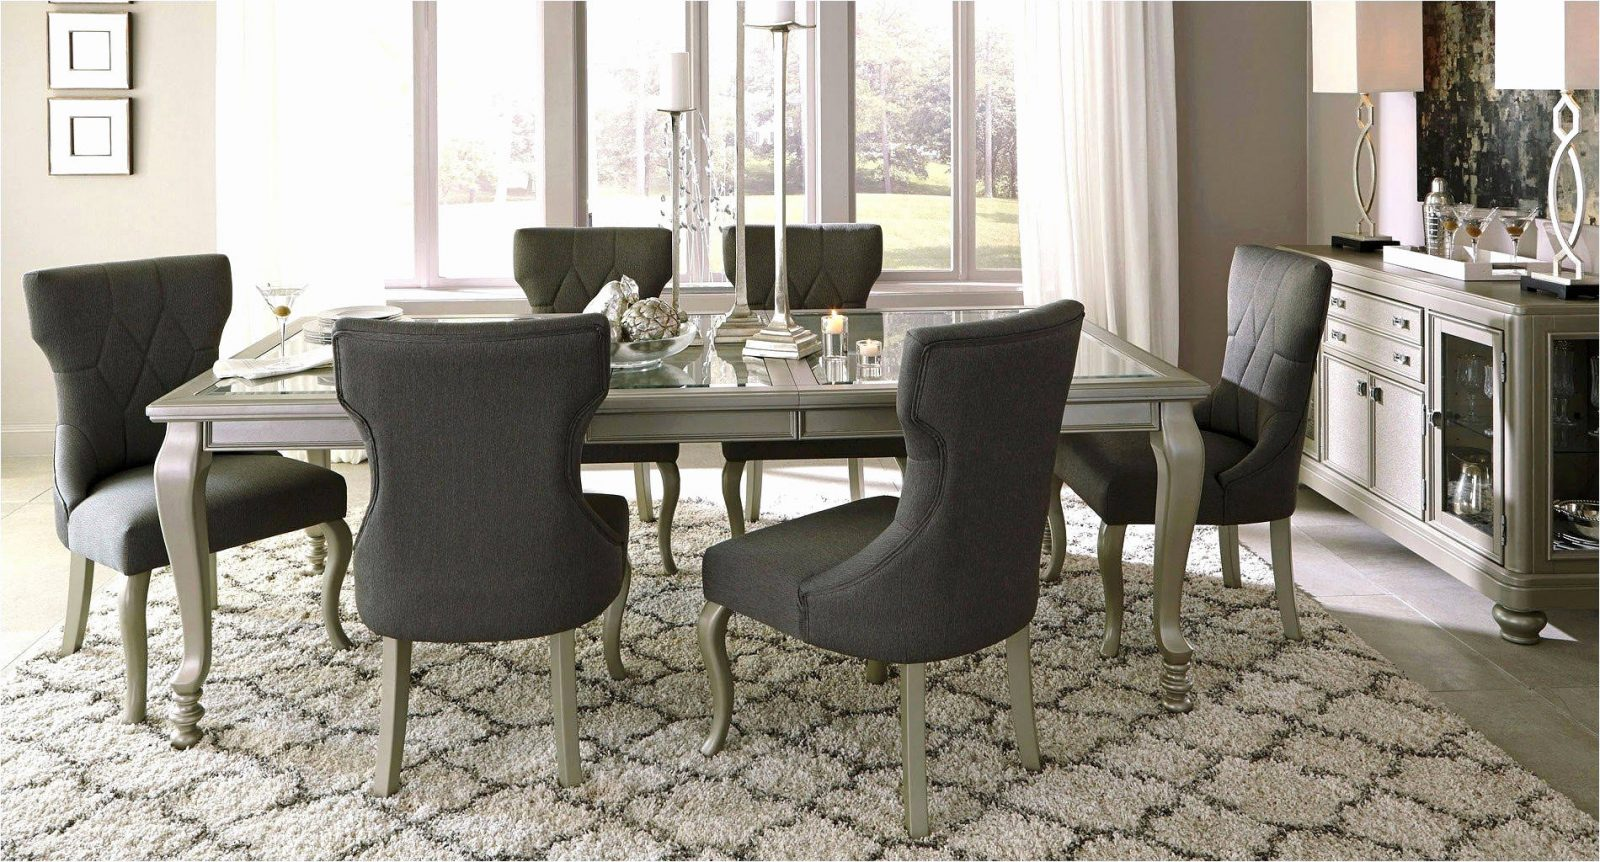 accent chairs for living room decorating interior your unique paula deen coffee table macys and collection spaces chai chair with ott tables macy teal blue end large console